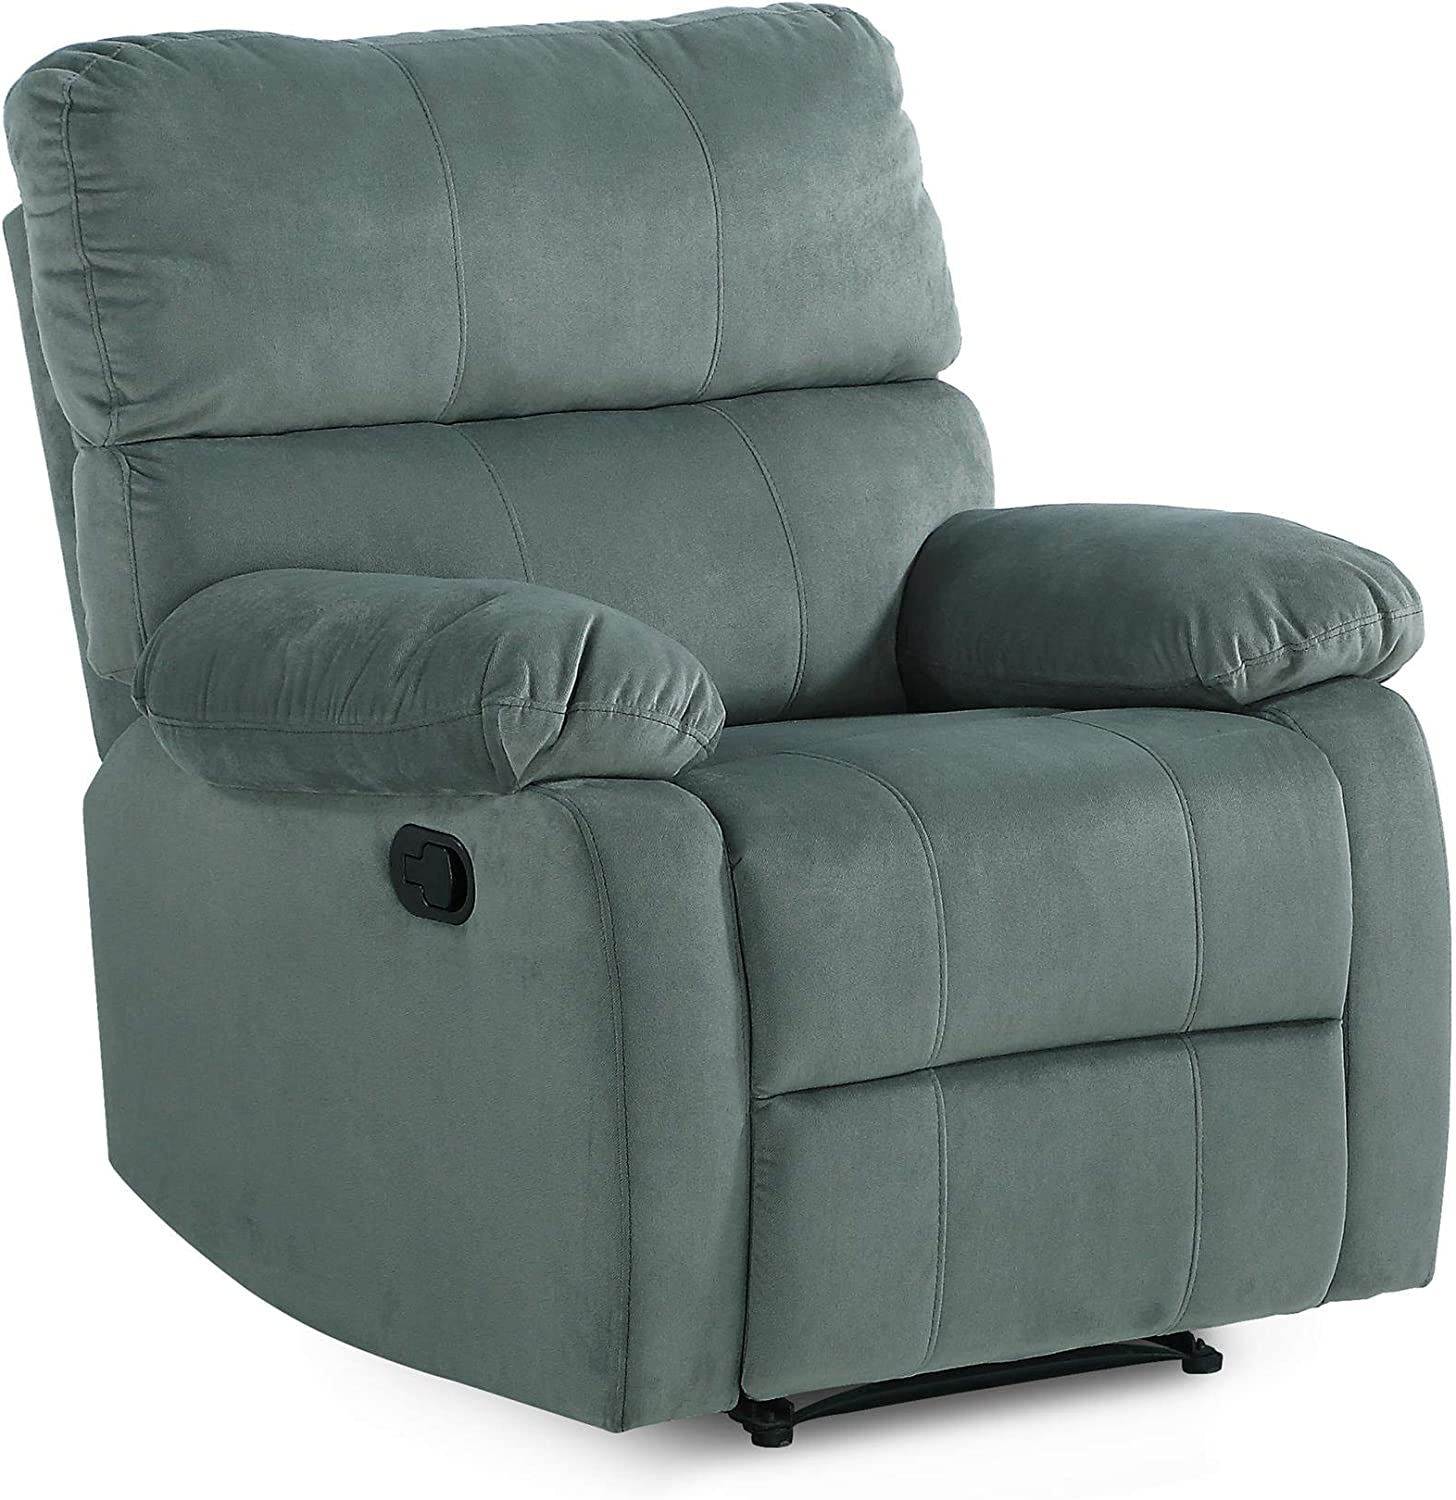 FlexLiving Recliners For Bedroom